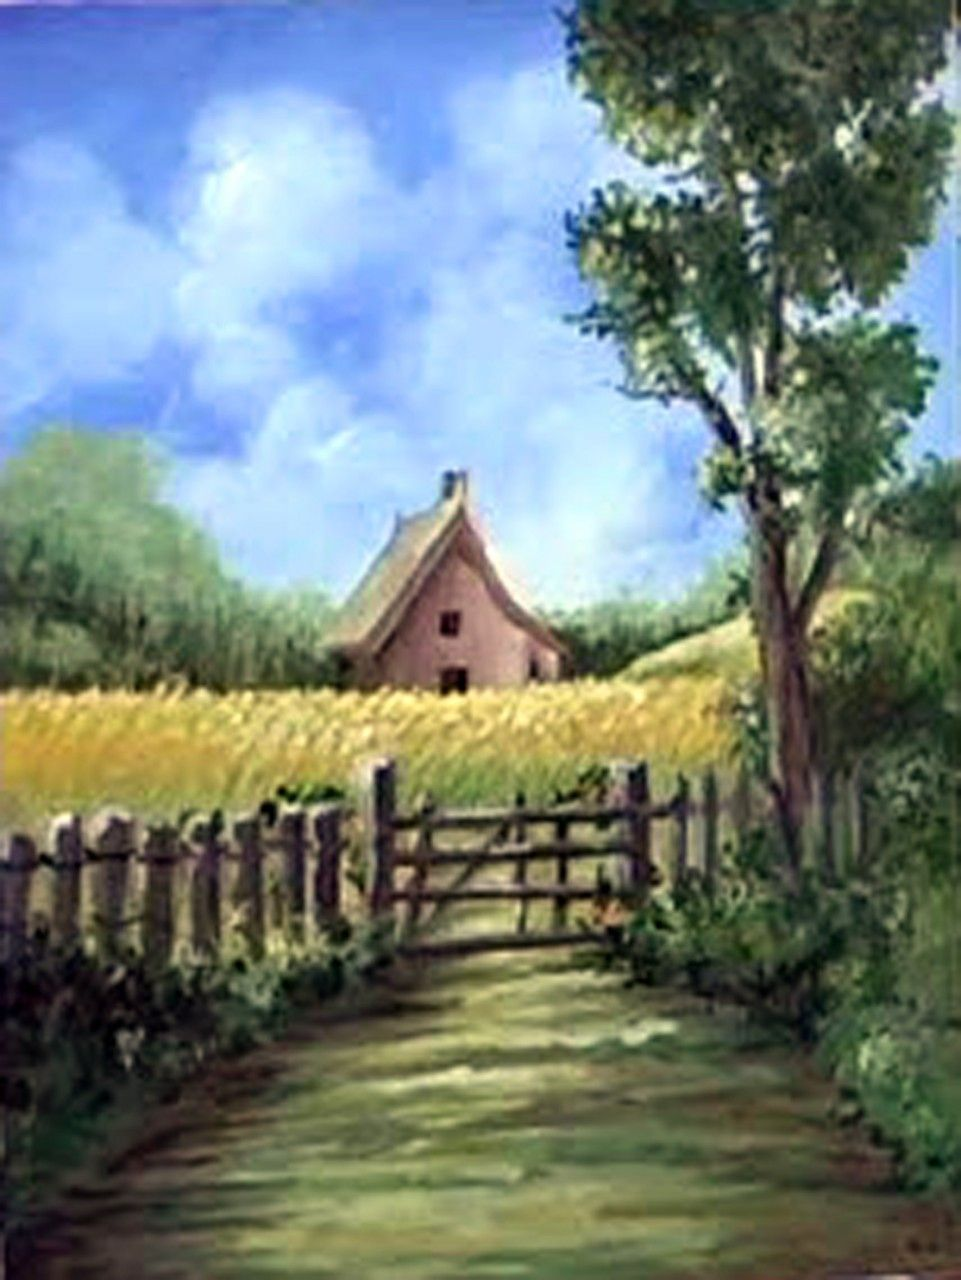 Online Class Landscape Wet In Wet Acrylic Painting Technique Cottage In A Cornfield Direct Painting Landscape Paintings Landscape Paintings Acrylic